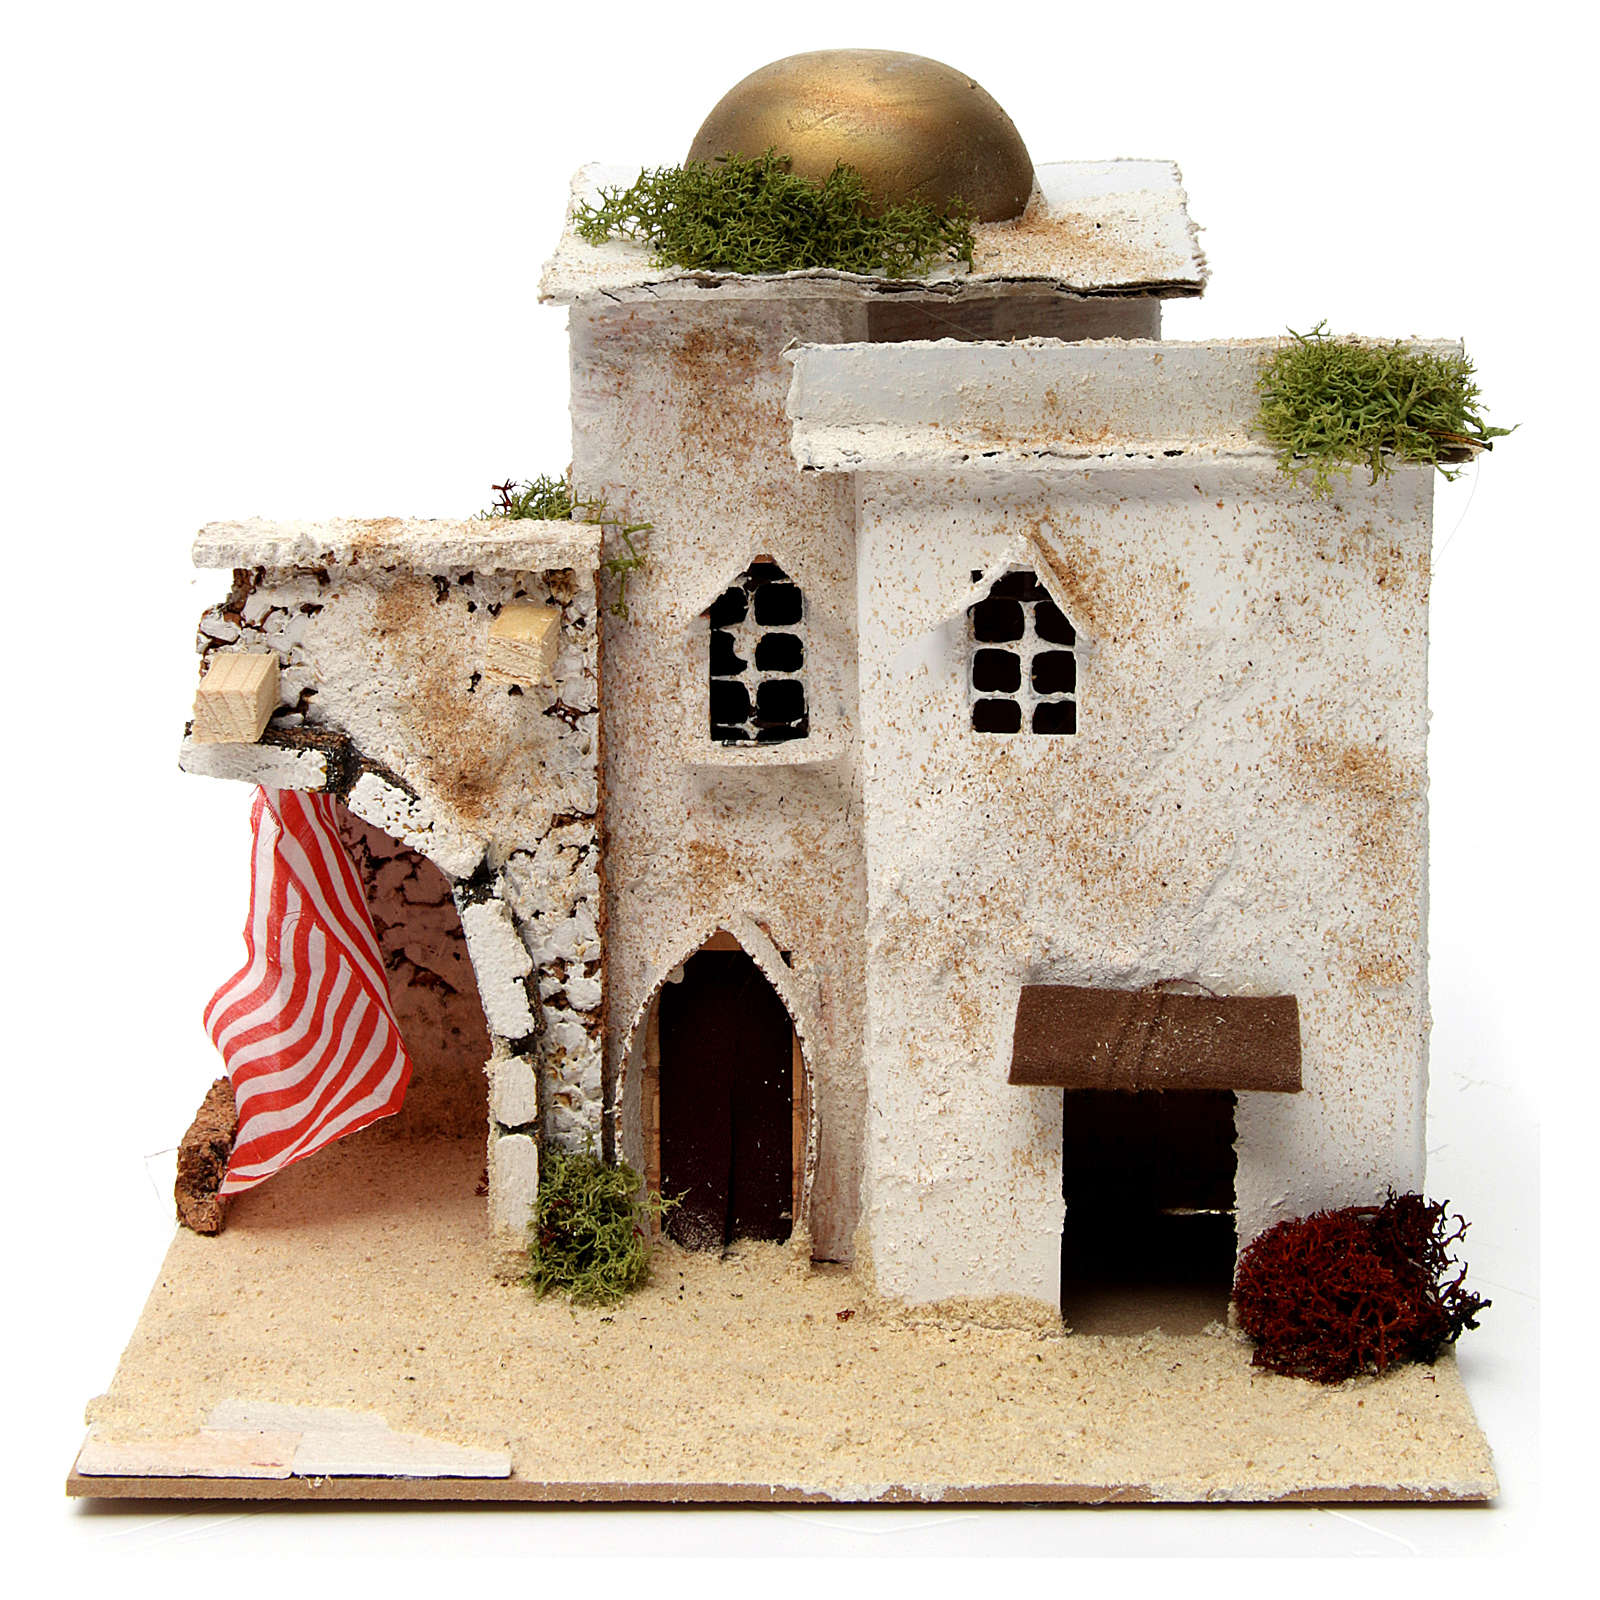 Arab Style Home with Cupola and open Houses 20x25x20 cm 4